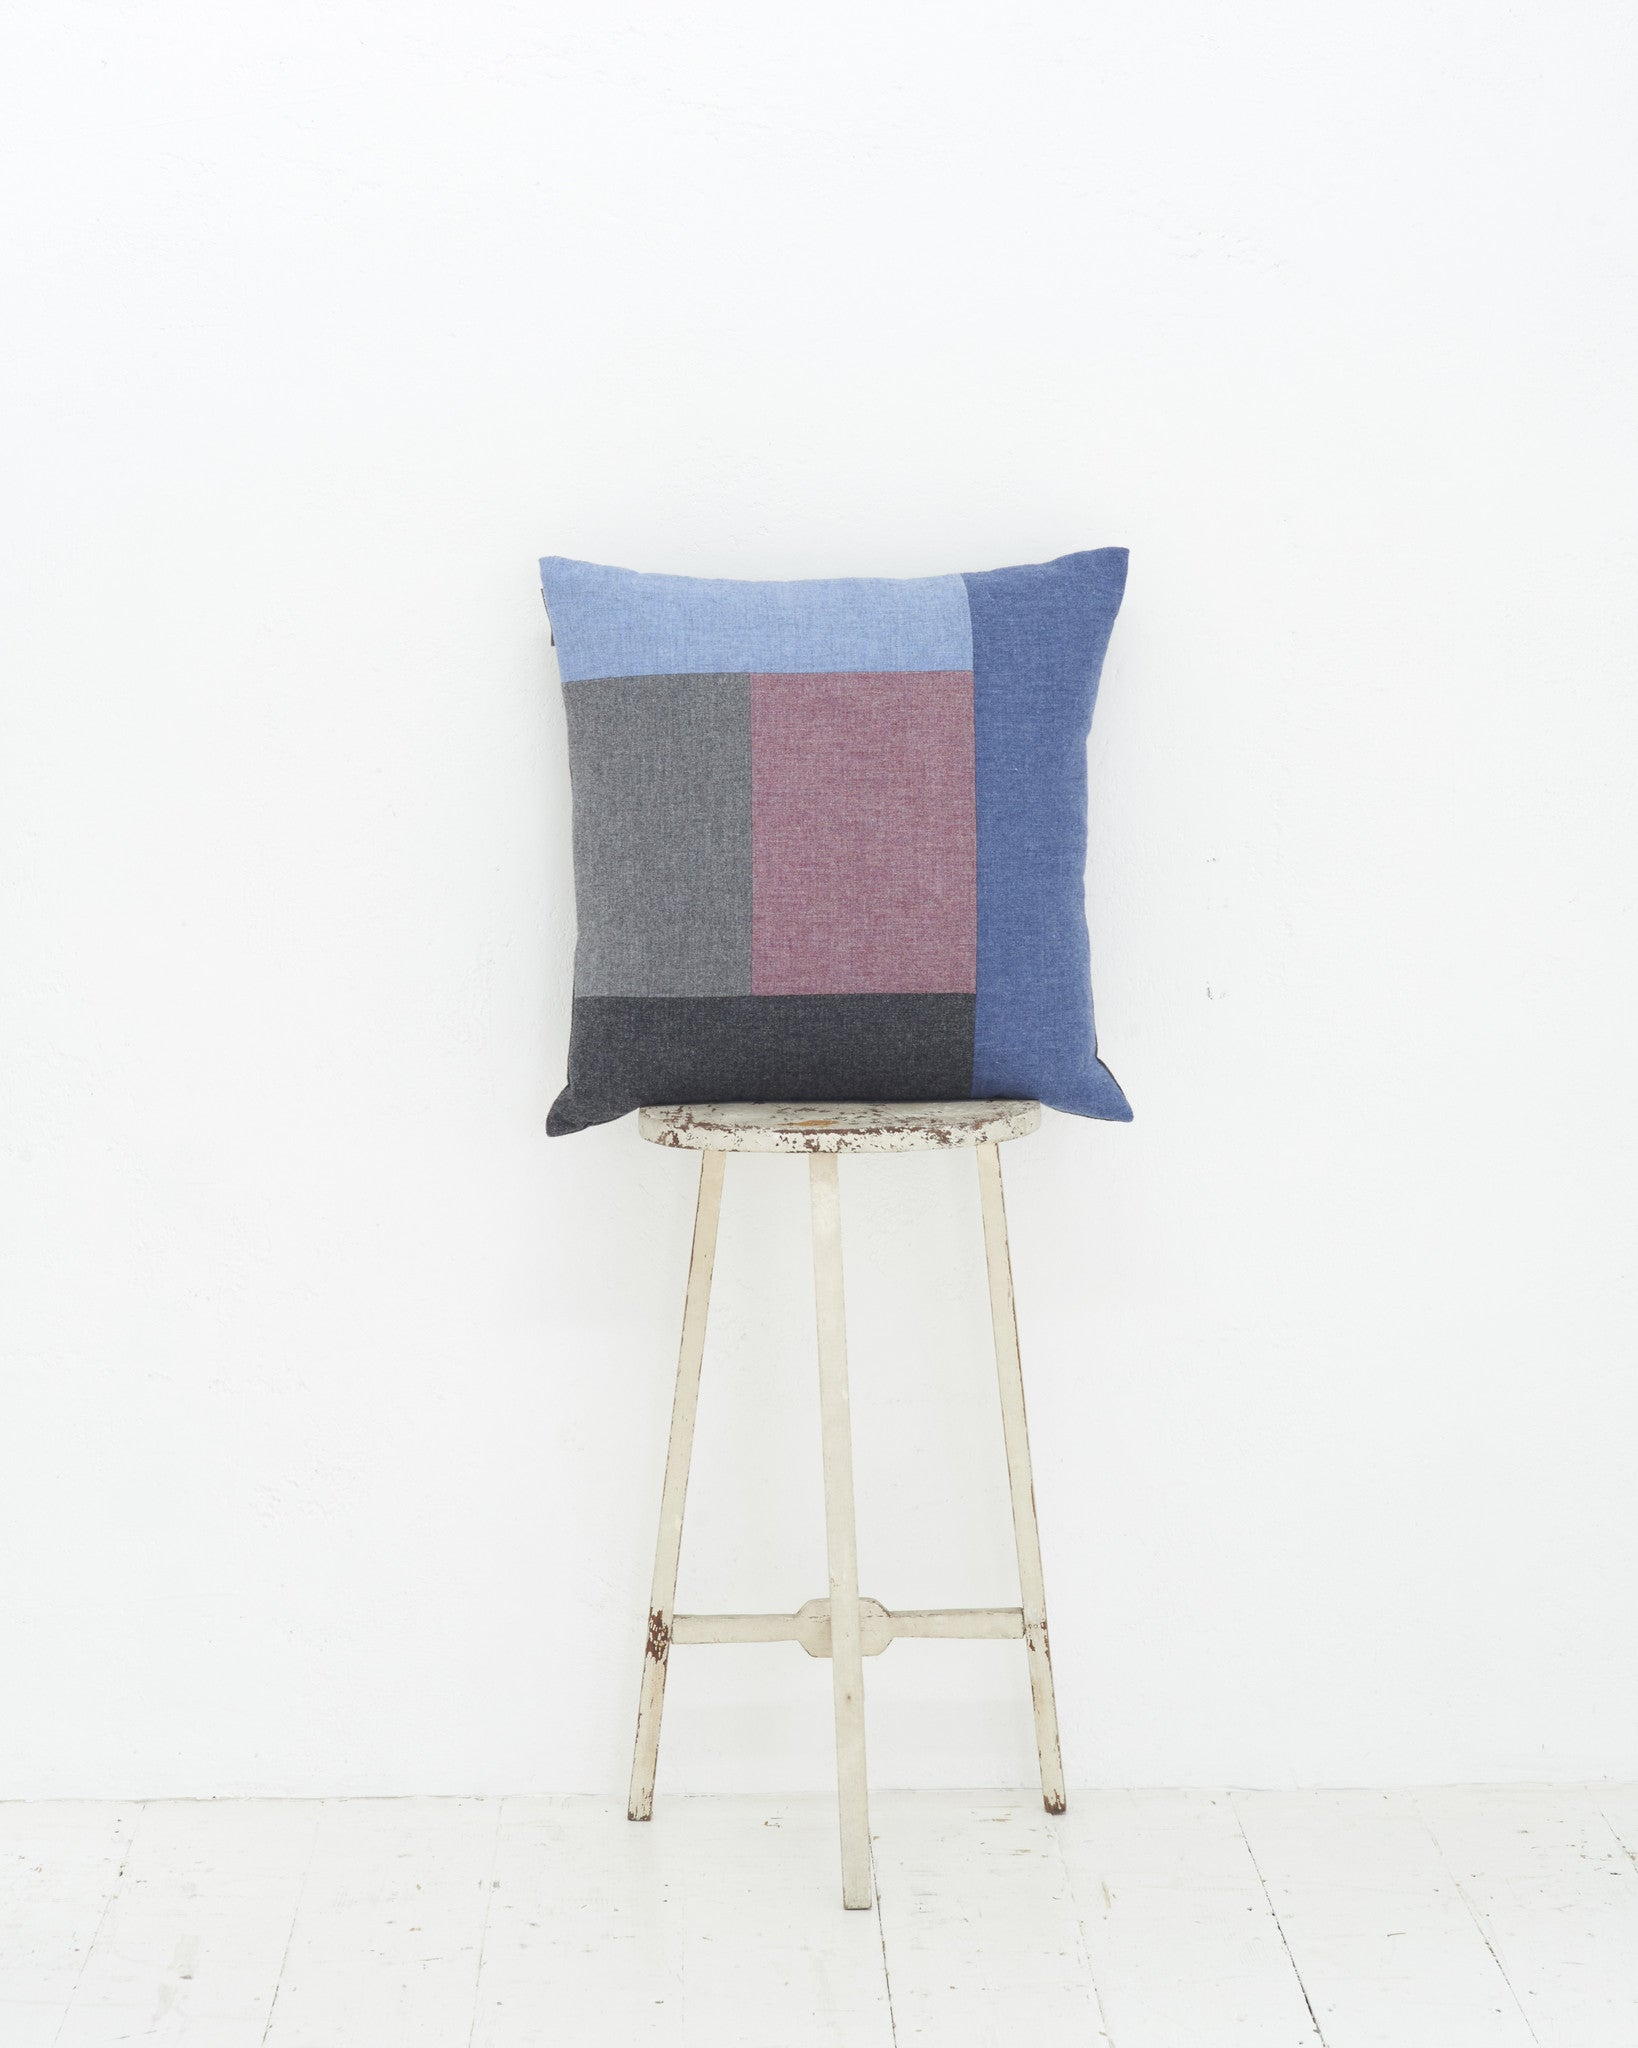 Patchwork Cushion I